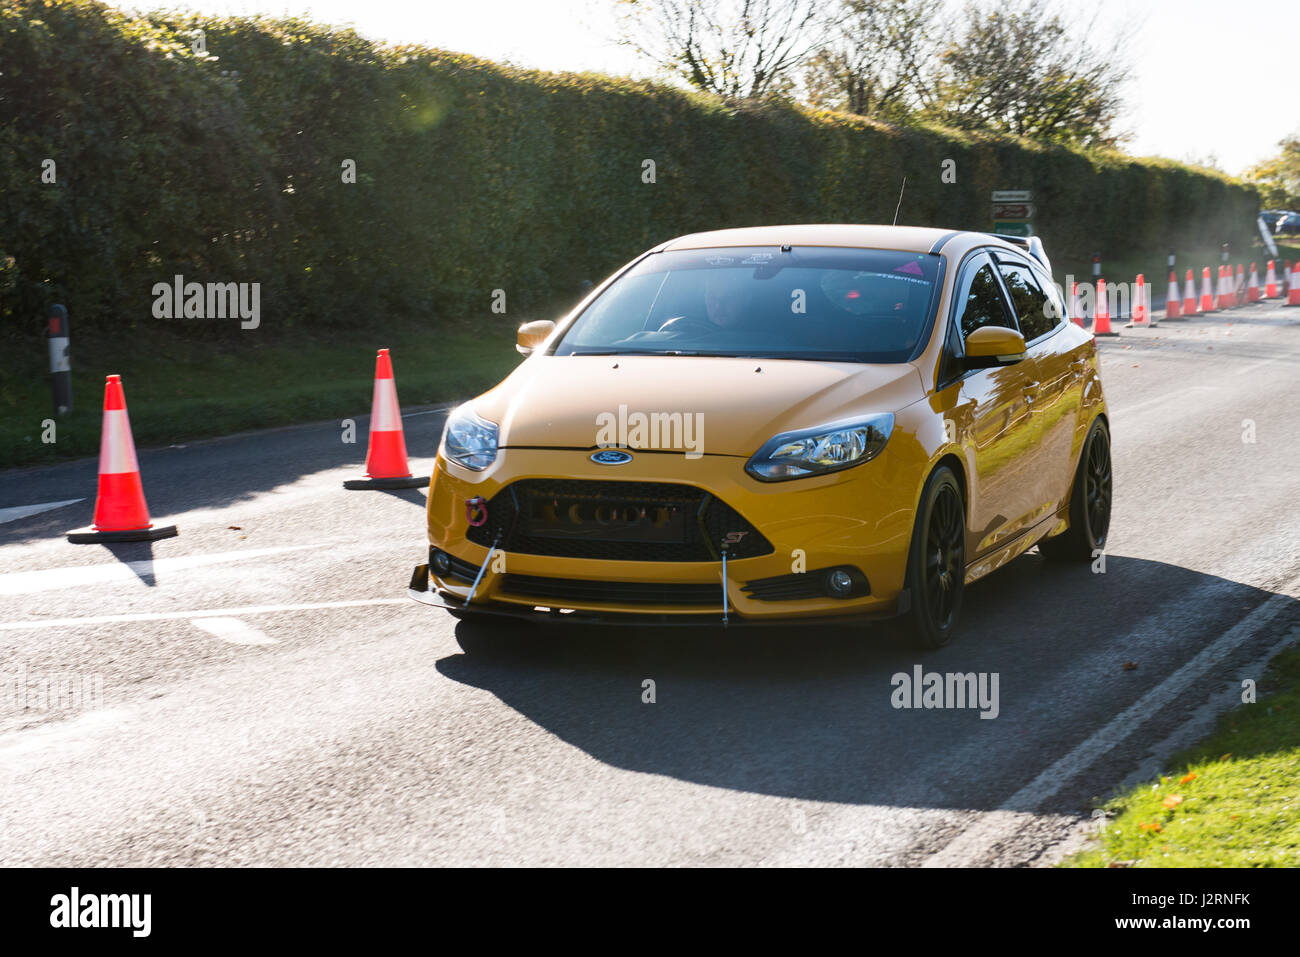 Ford Motor Works Stock Photos Images Alamy Diagram Goodwood Circuit Chichester West Sussex United Kingdom 6 November 2016